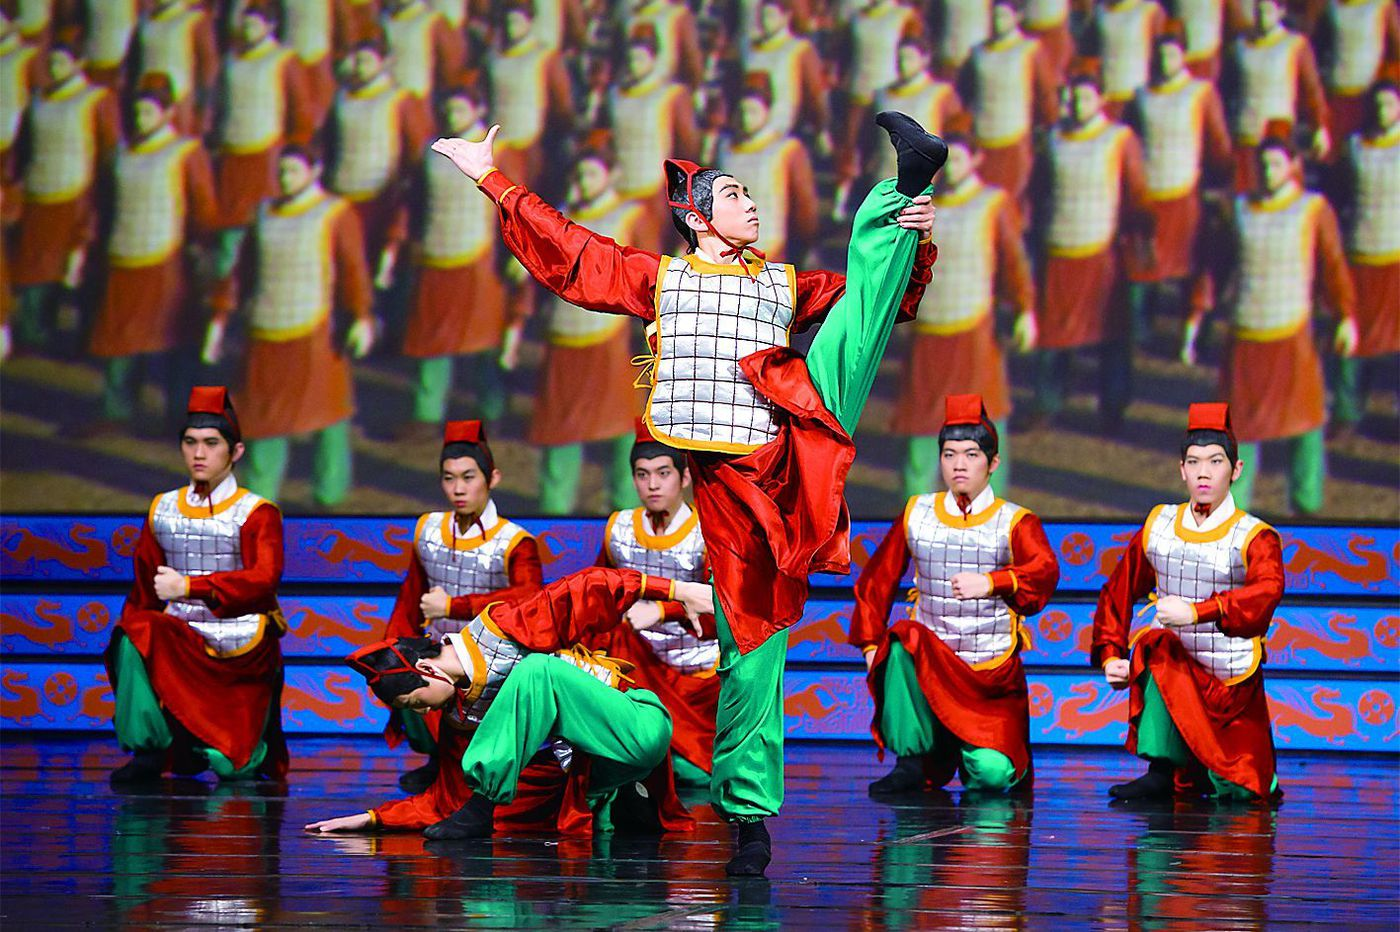 Shen Yun dance troupe: Shows still on in Philadelphia and elsewhere